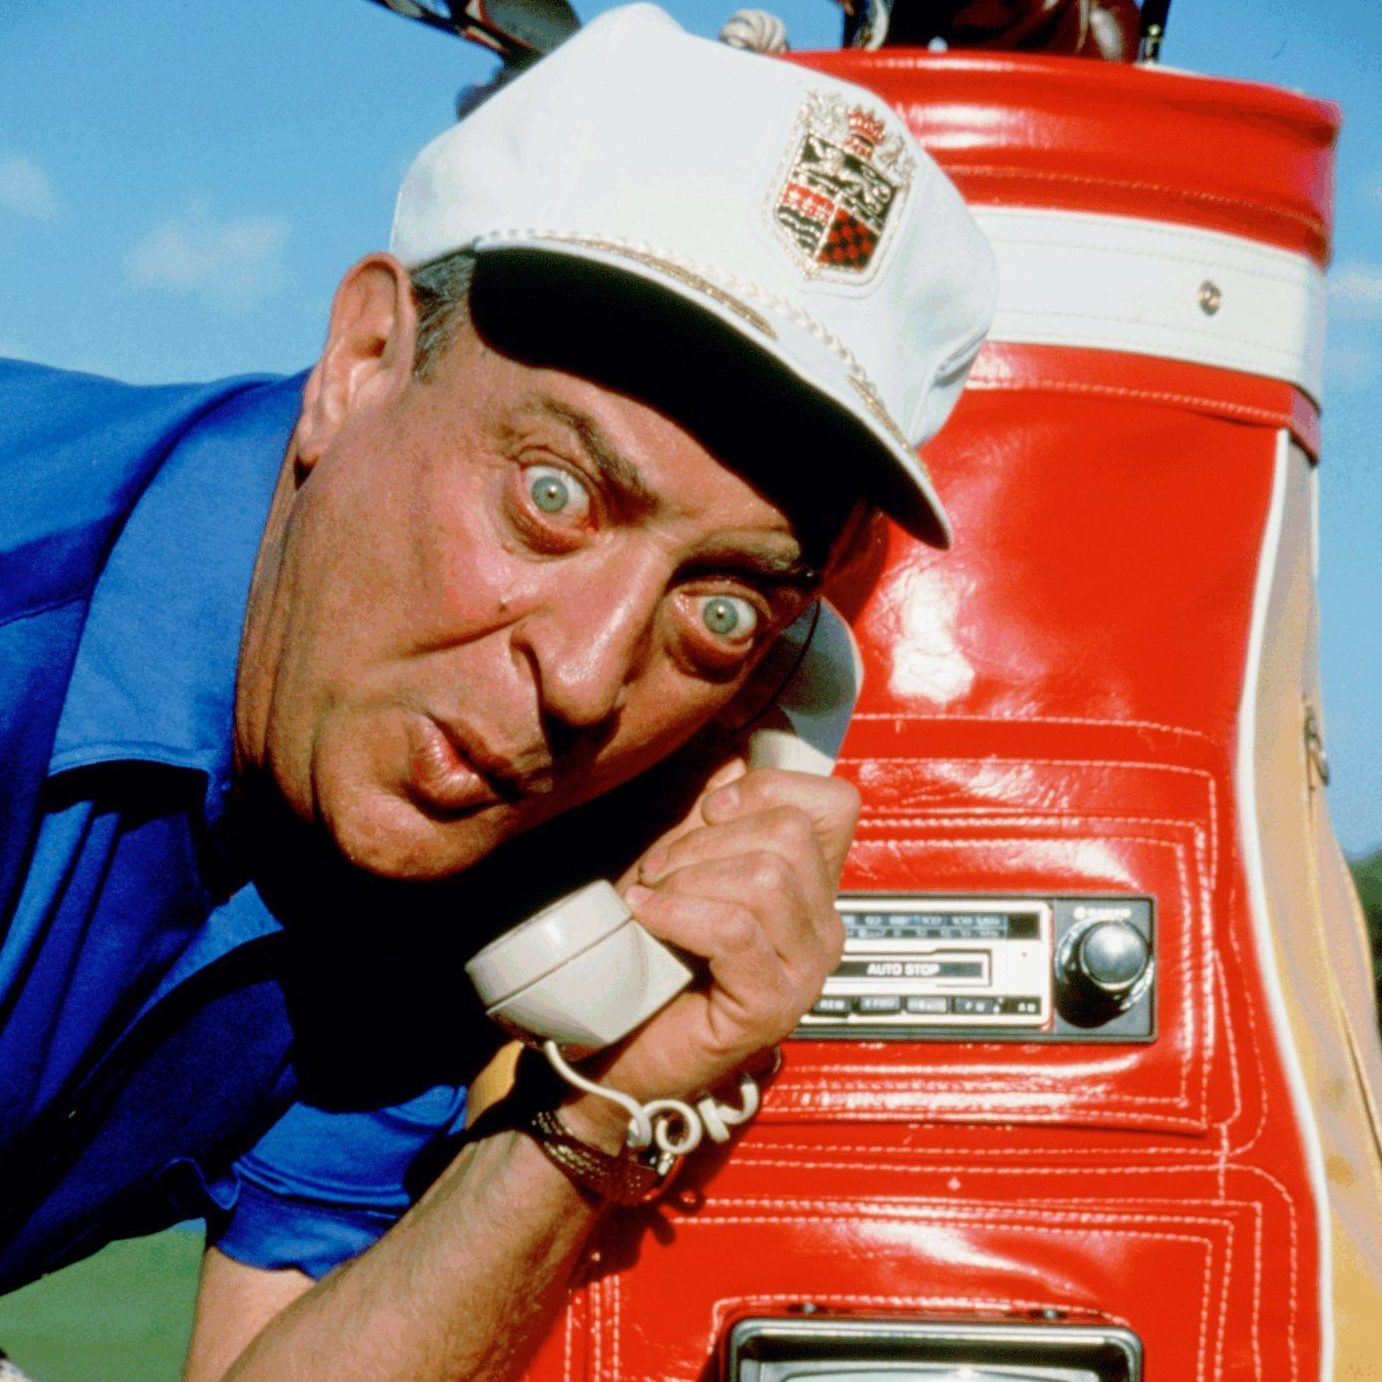 8e3fb5d6296622d2baa78755c723021b e1601384790150 Caddyshack: 20 Things You Never Knew About The Comedy Classic